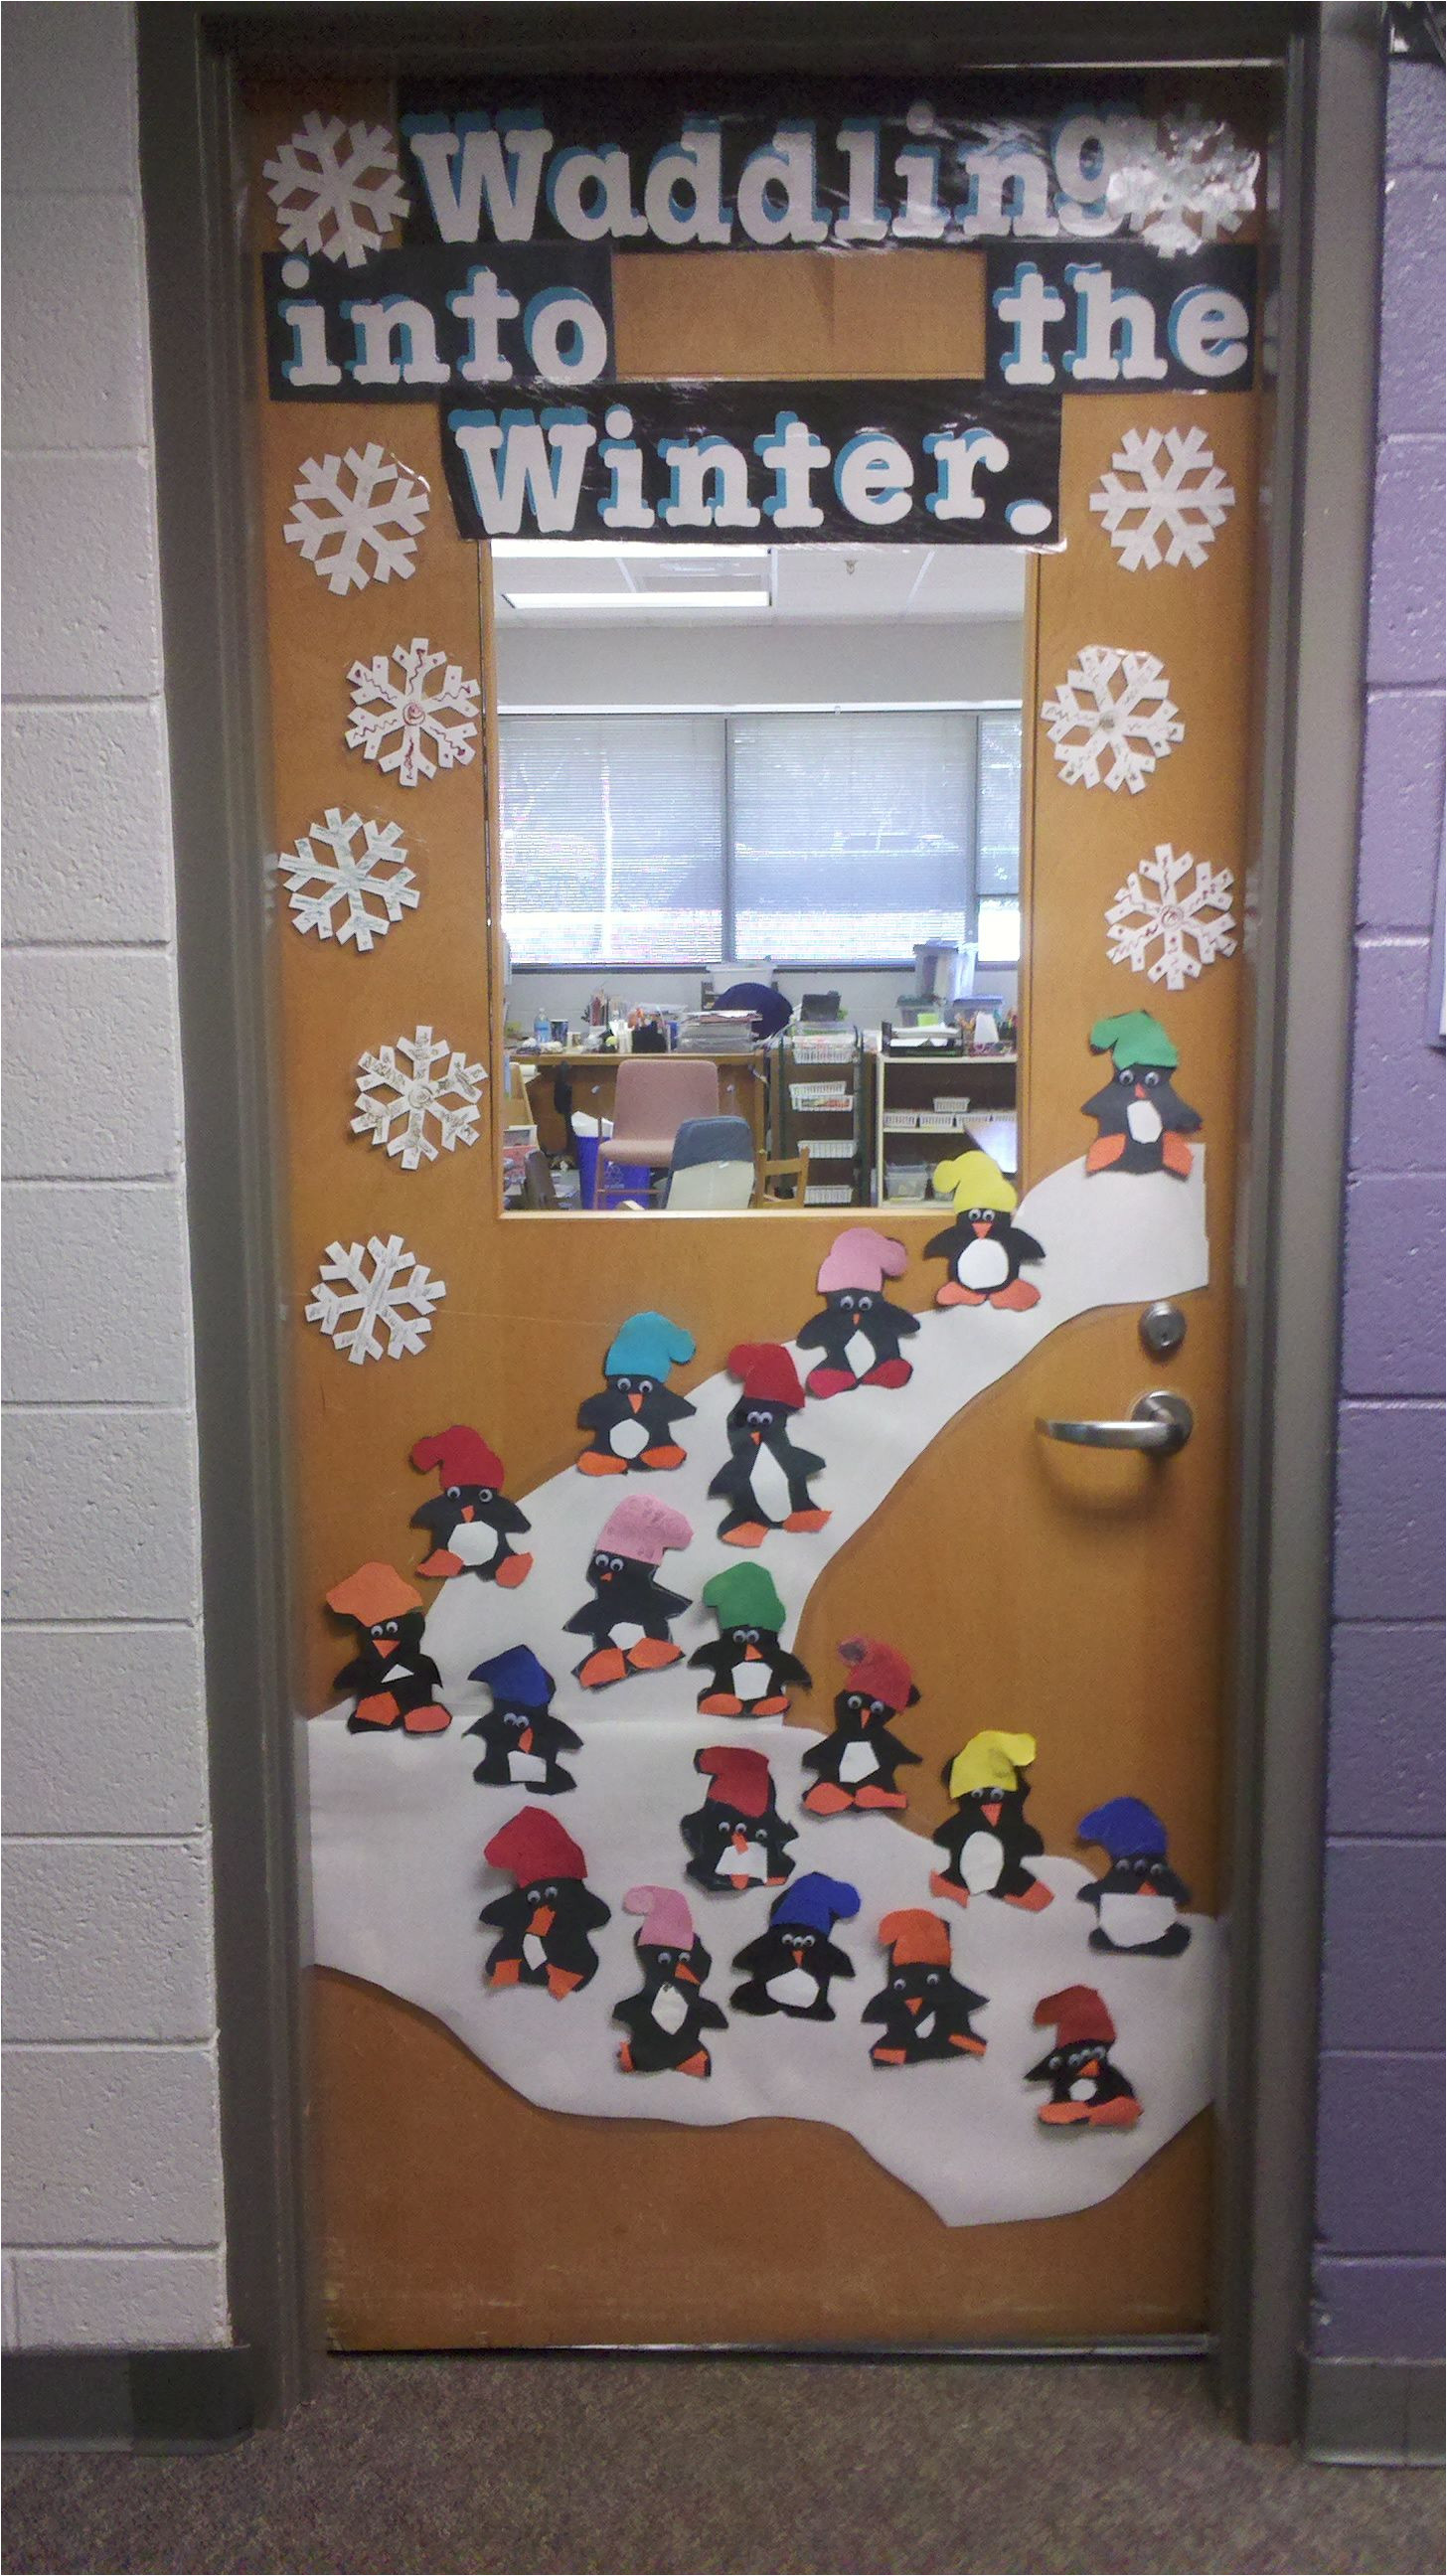 Winter Door Decorations for Elementary School This Would Be Appropriate since I M Pregnant and Will Def Be